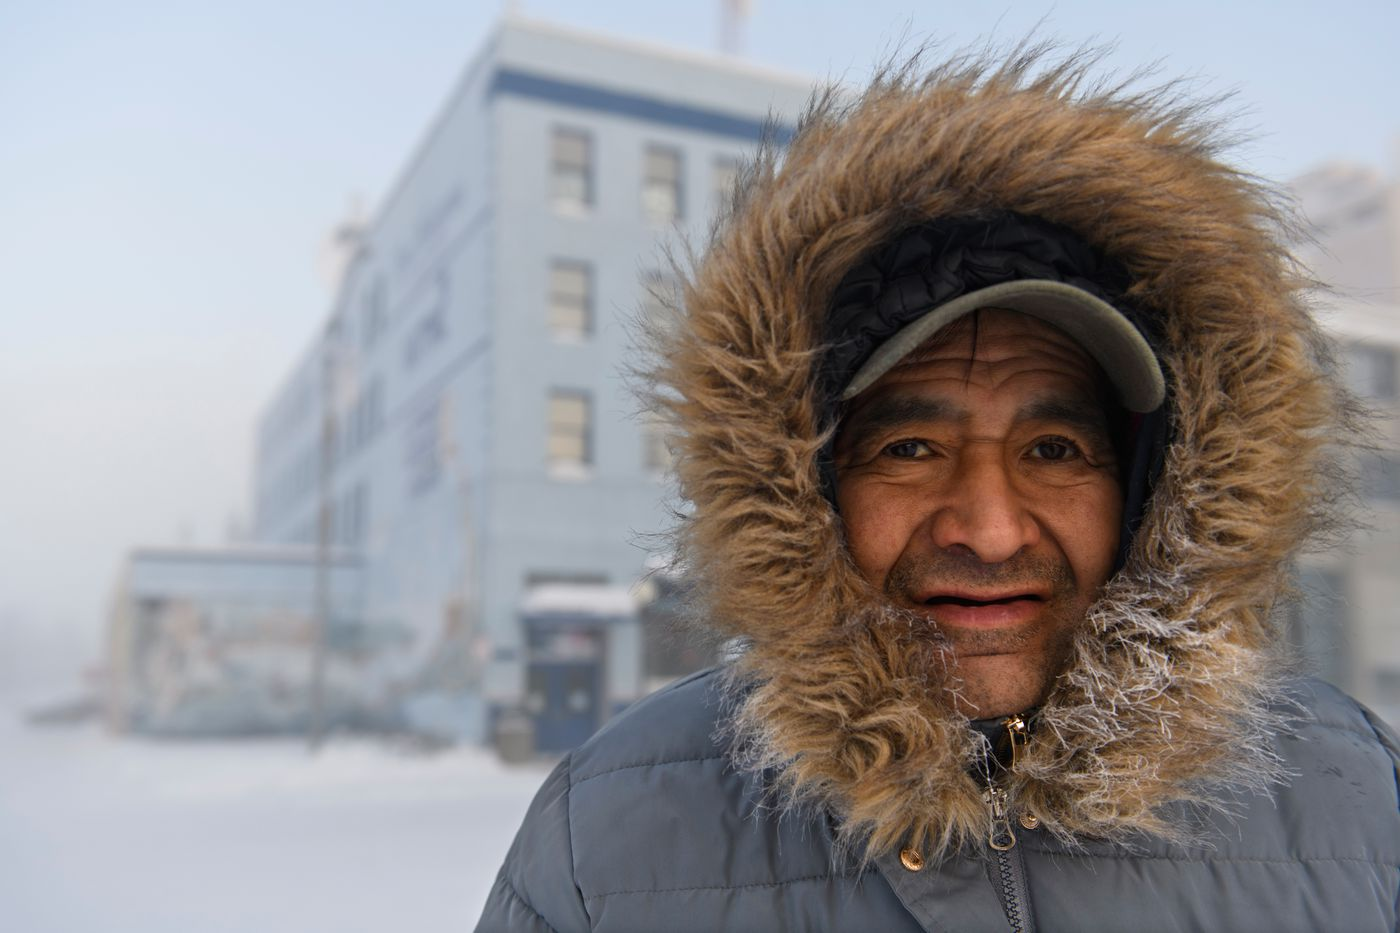 Arnold Koyukuk said he looks out for homeless people in Fairbanks when the temperatures drop. (Marc Lester / ADN)